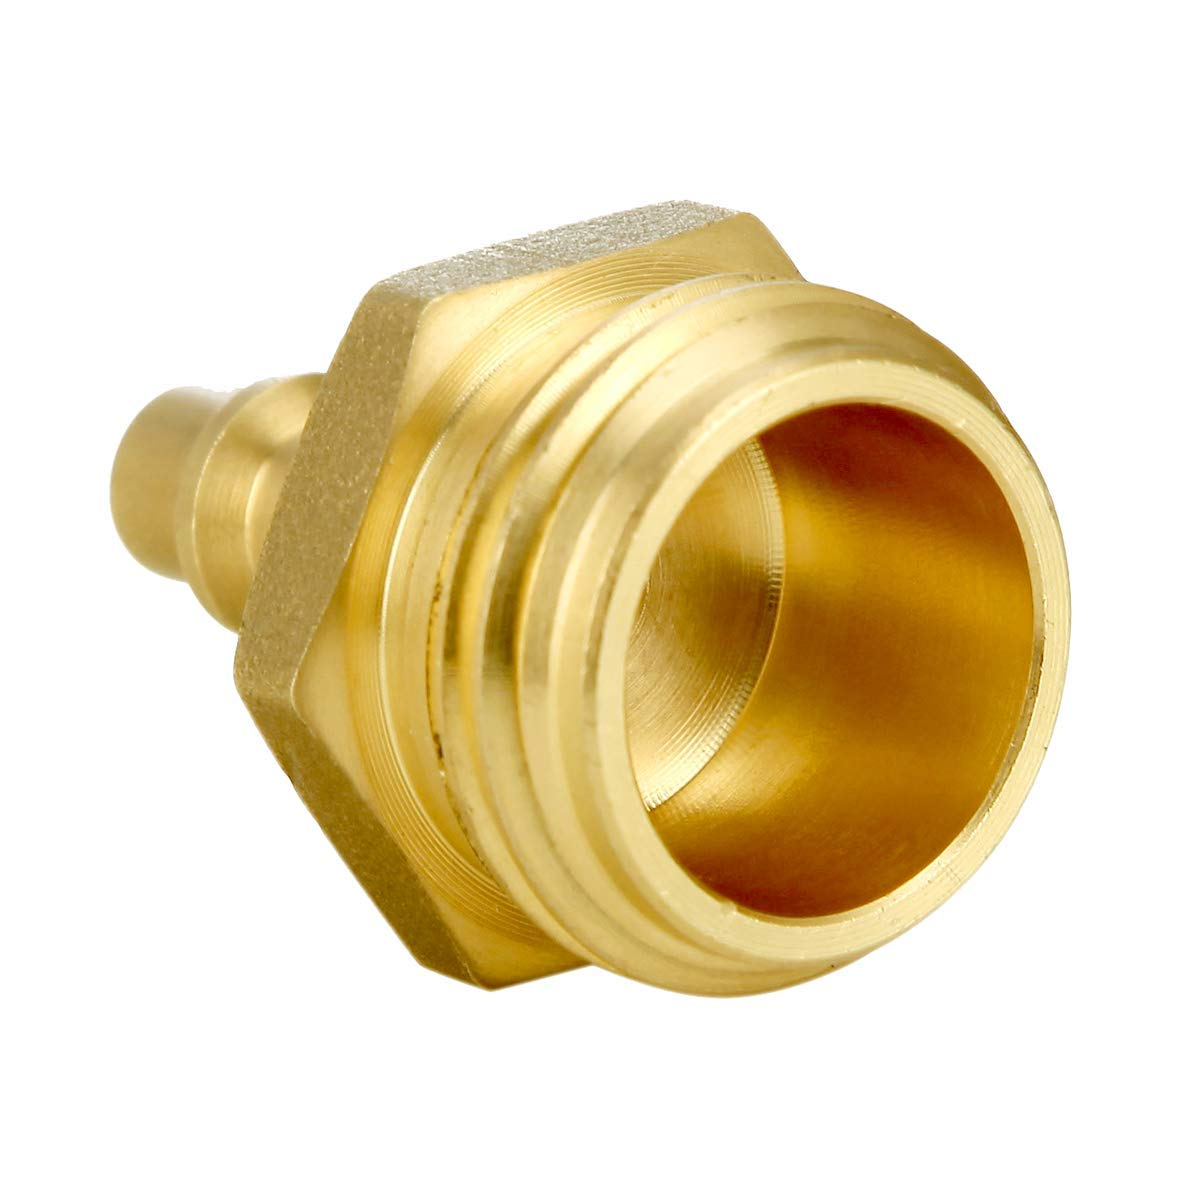 Water Blowout Quick Connect Plug Fittings for Air Compressor quick connection Plug RV and Camper Winterizing Blowout Plug Blowout to Winterize Boats Motorhomes / For 3//4-11NH Lead Free Garden Faucet